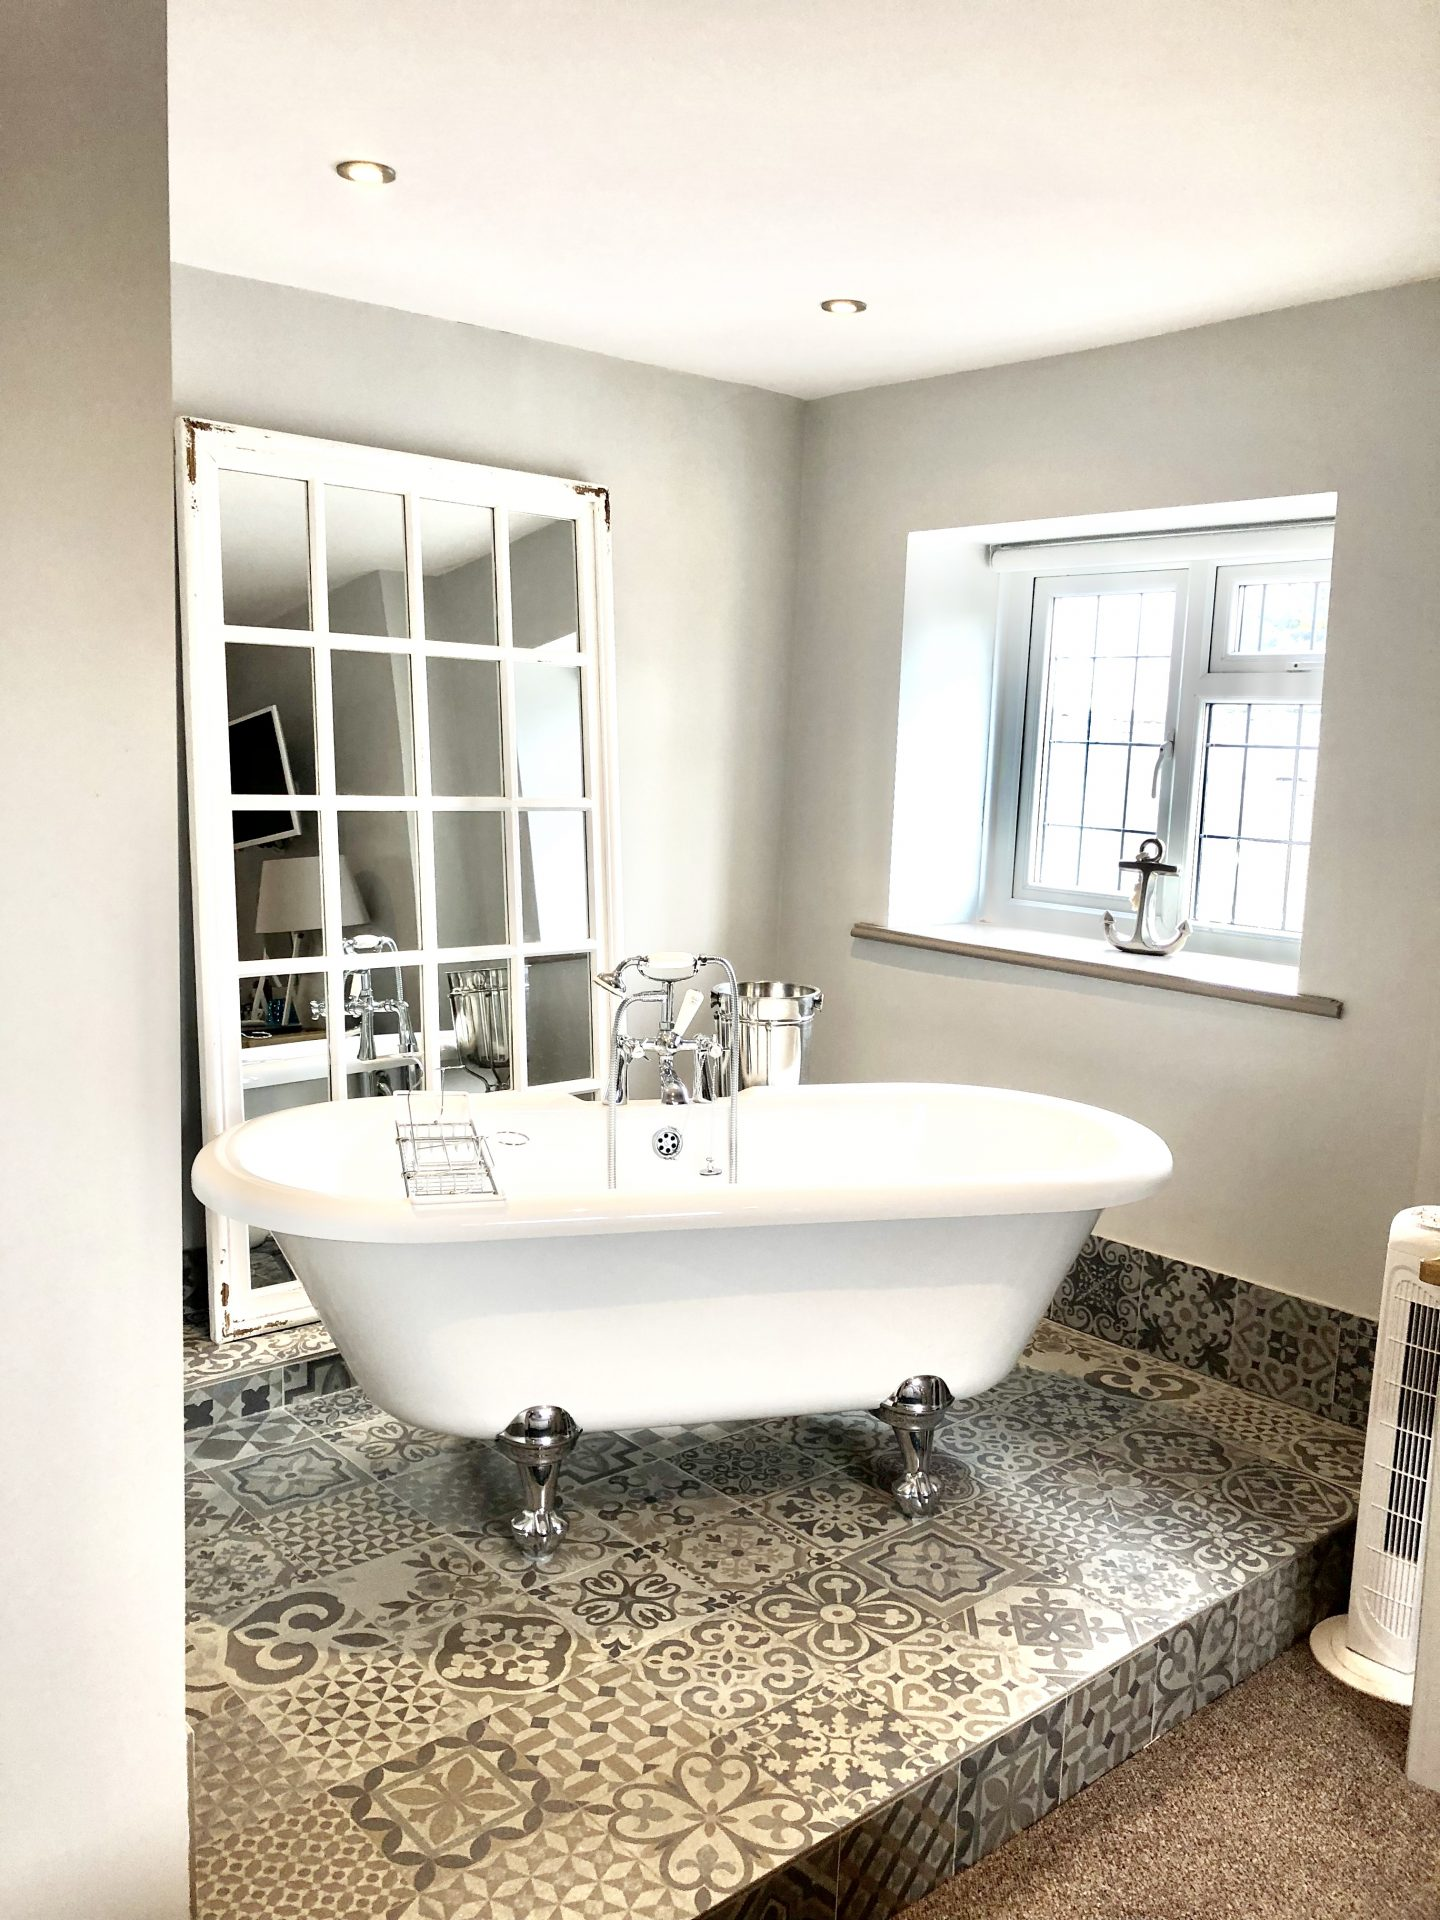 Bath in the Alnmouth room at Catch Ponteland